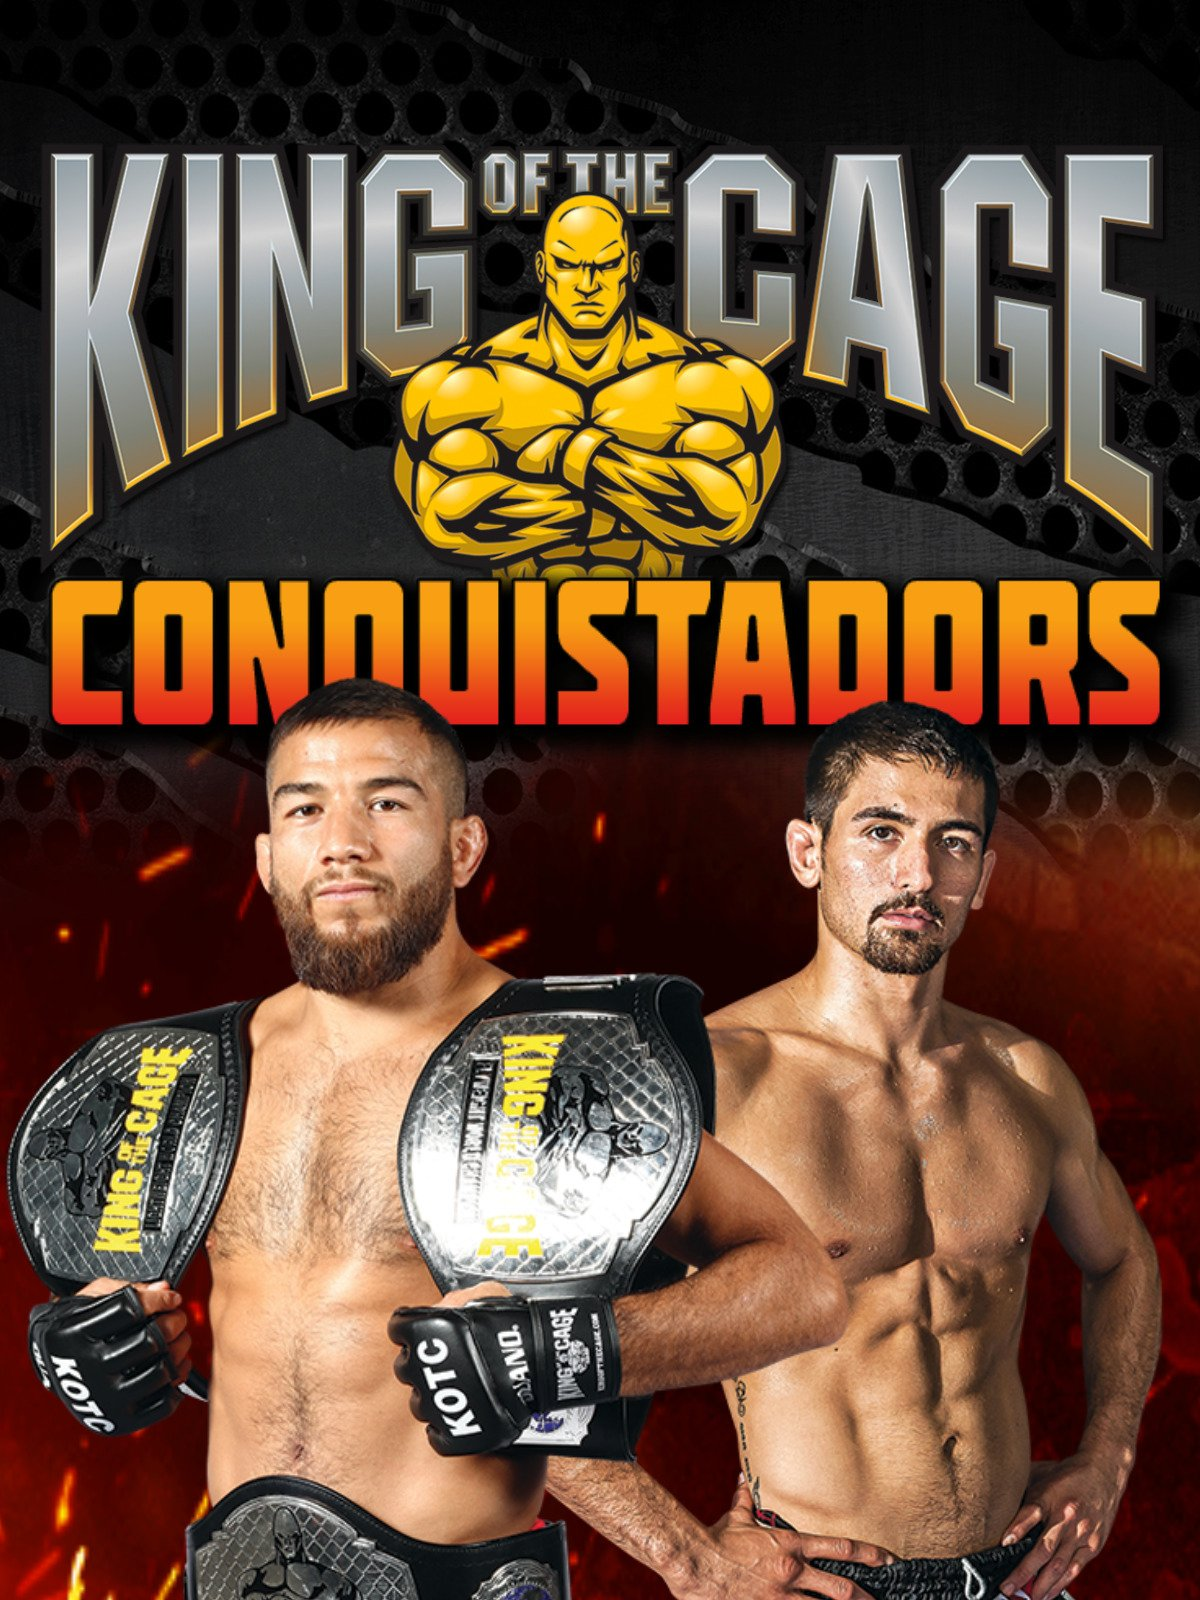 King of the Cage Conquistador